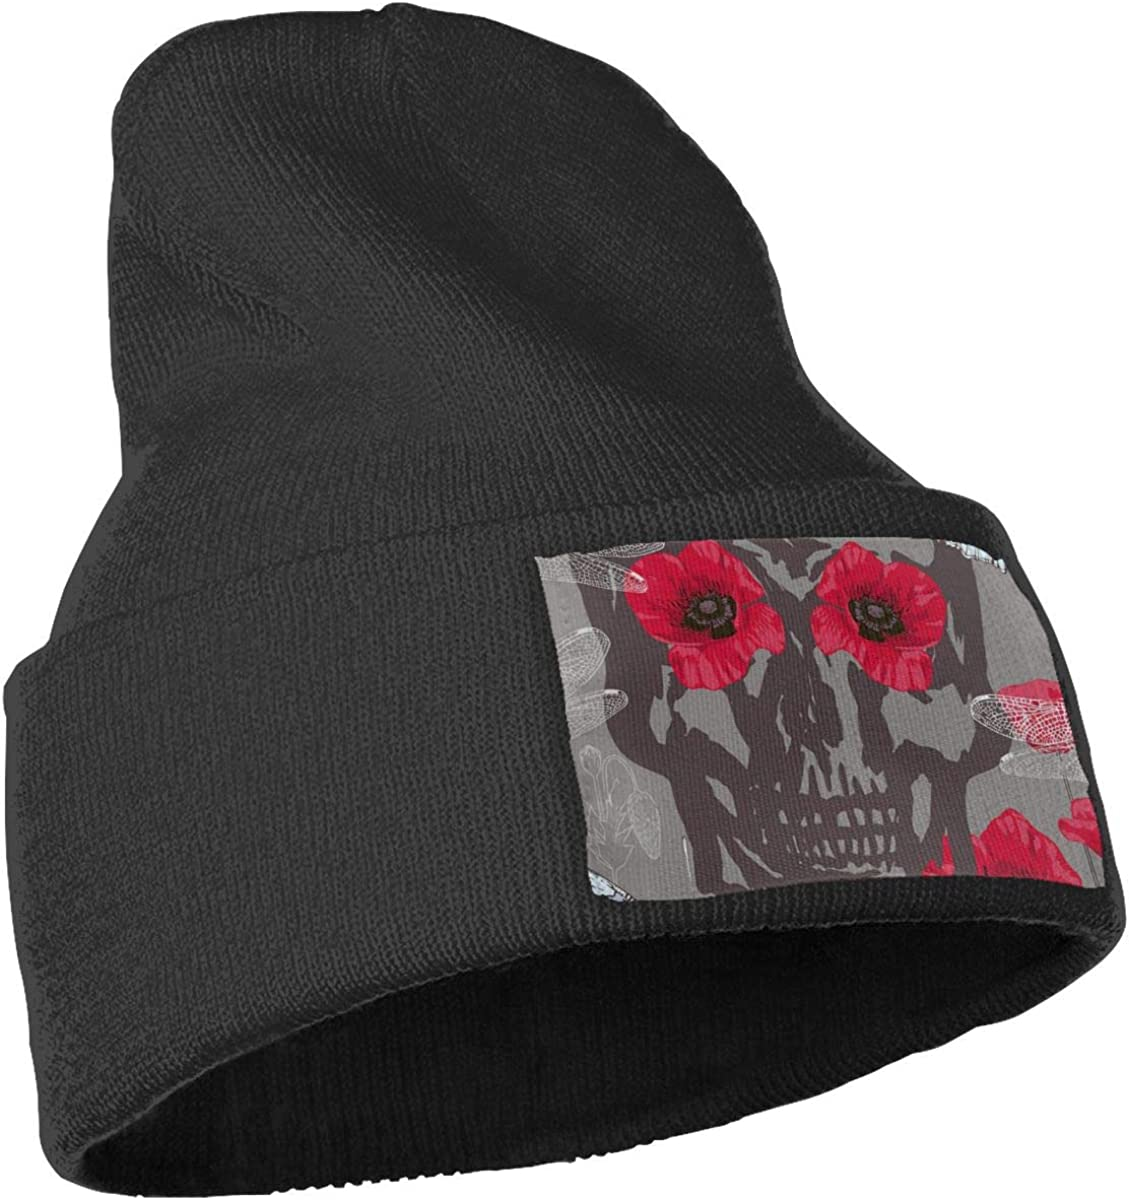 Ydbve81-G Mens and Womens 100/% Acrylic Knitting Hat Cap Skulls Flowers and Insects Fashion Skull Beanie